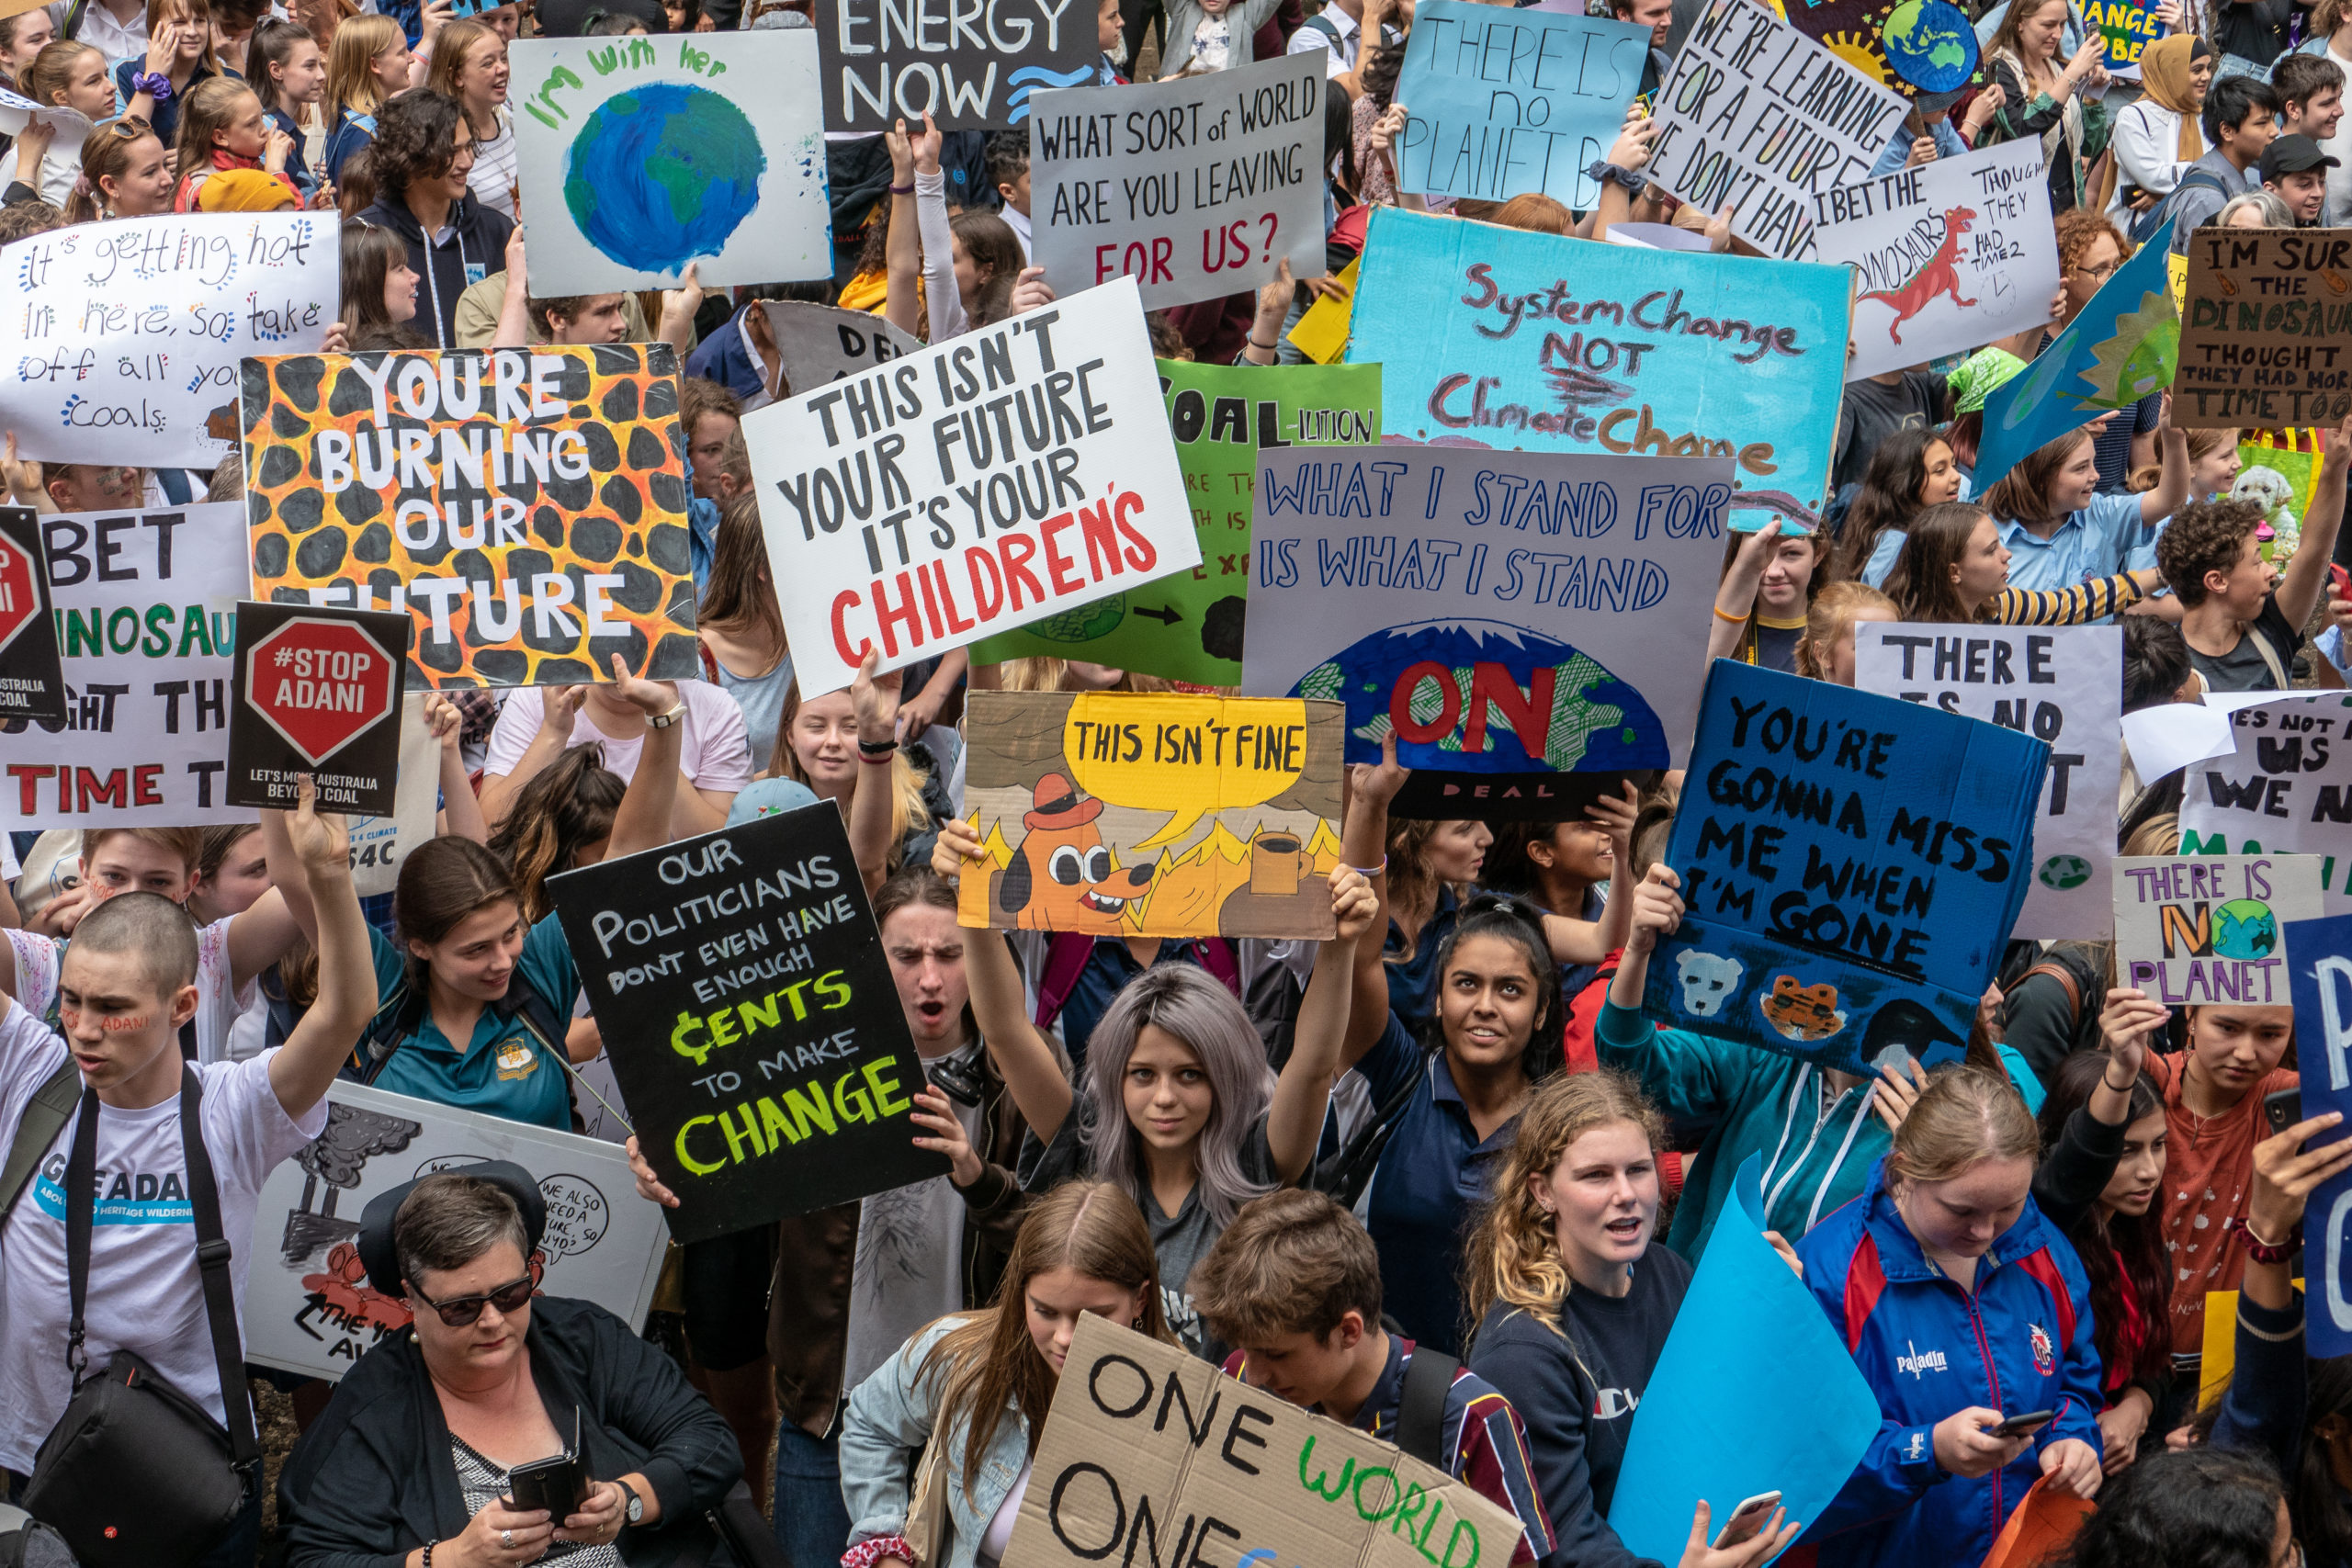 Artists have been at the forefront of climate action